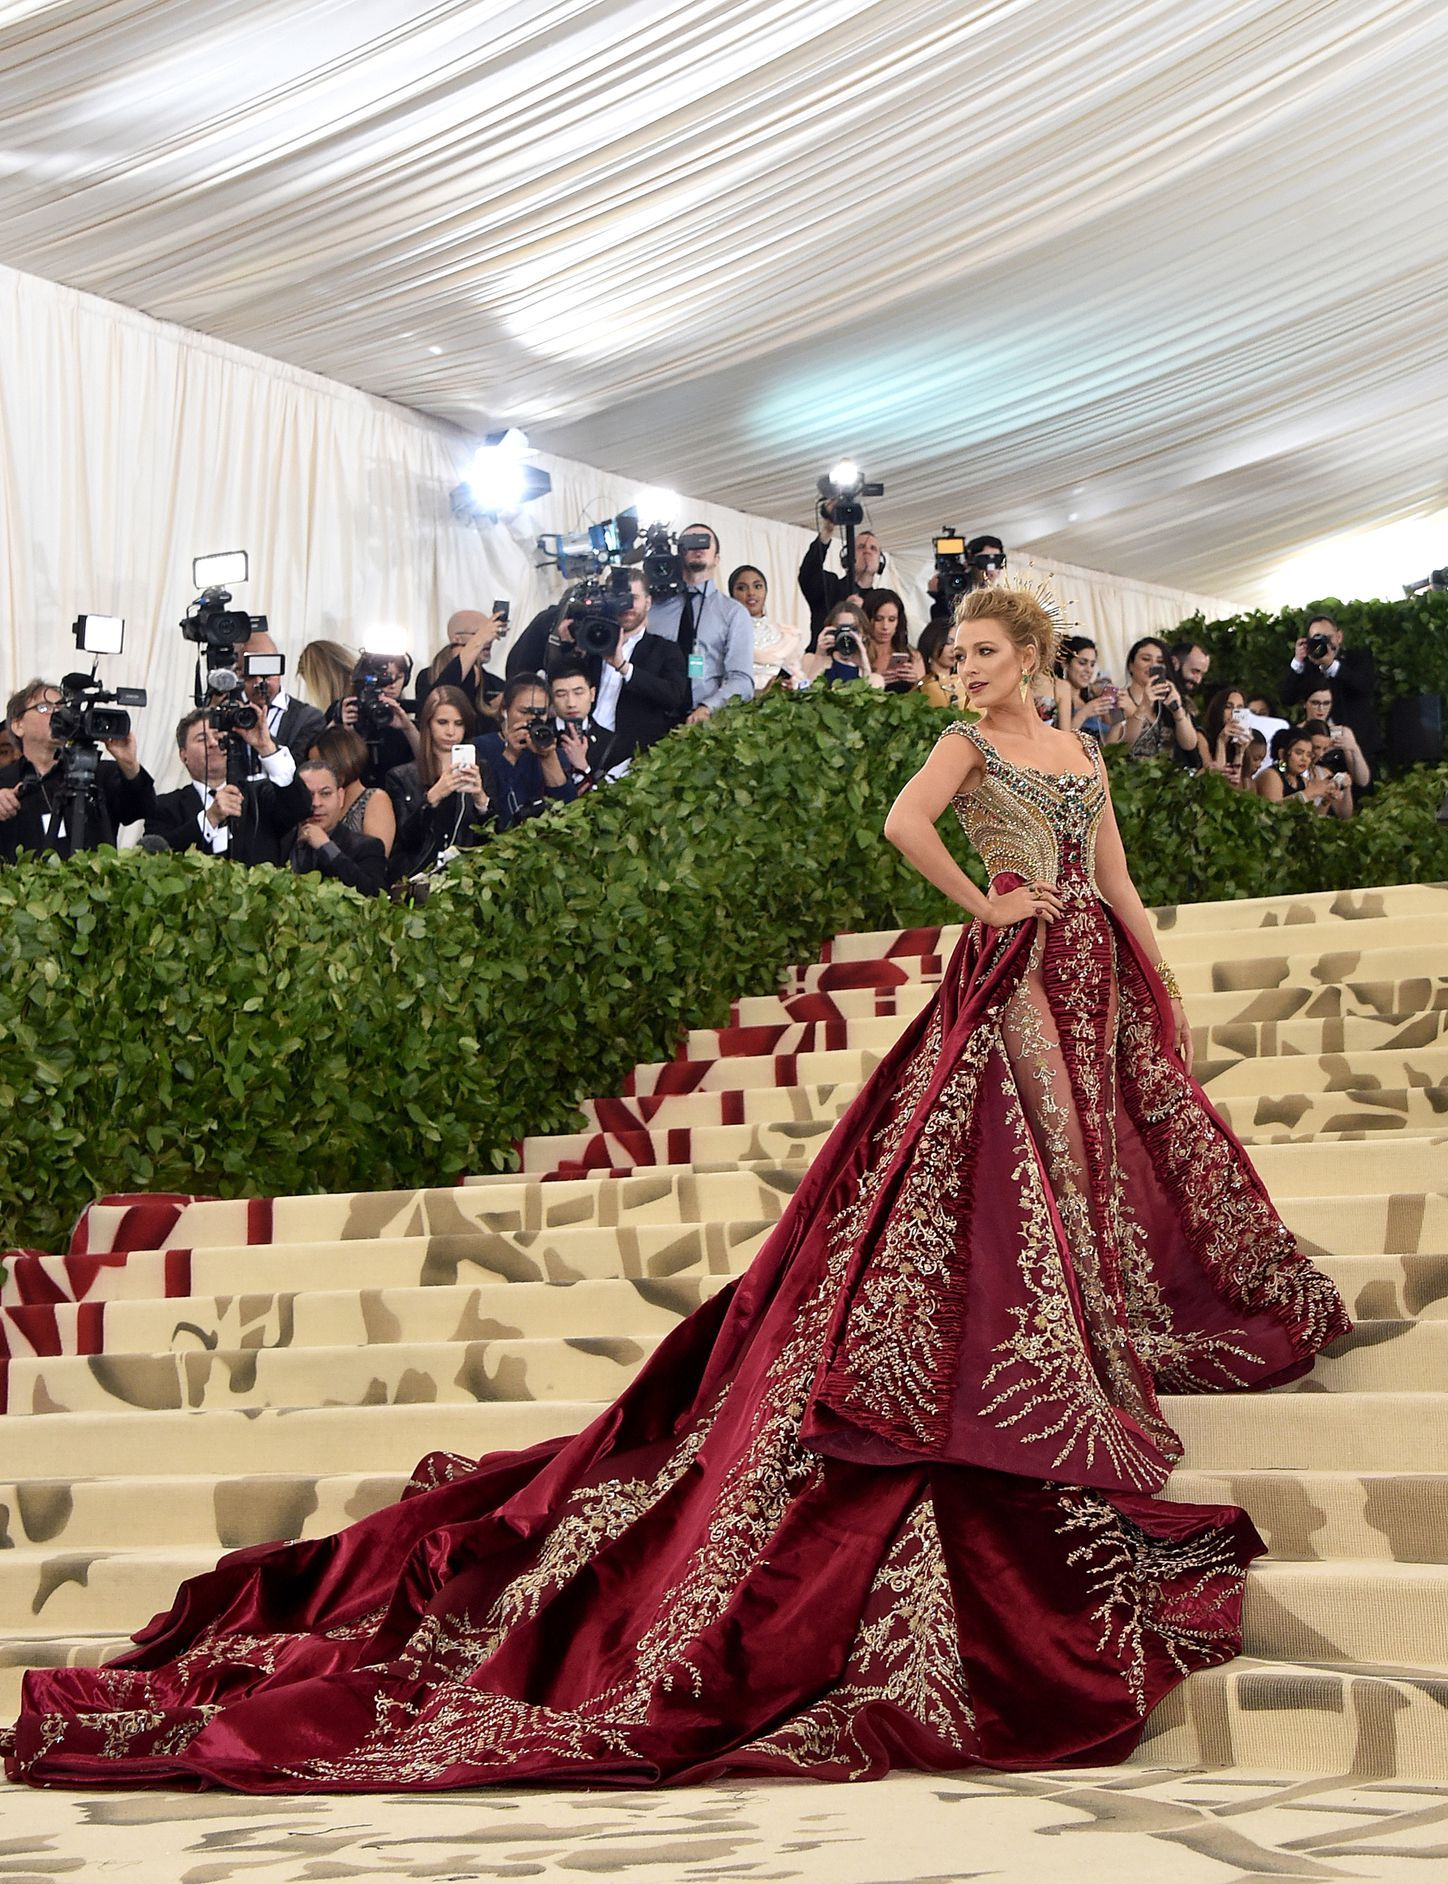 Blake Lively Versace Gown At 2018 Met Gala - Blake Lively Met Gala Dress  2018 6844a84dbc3e